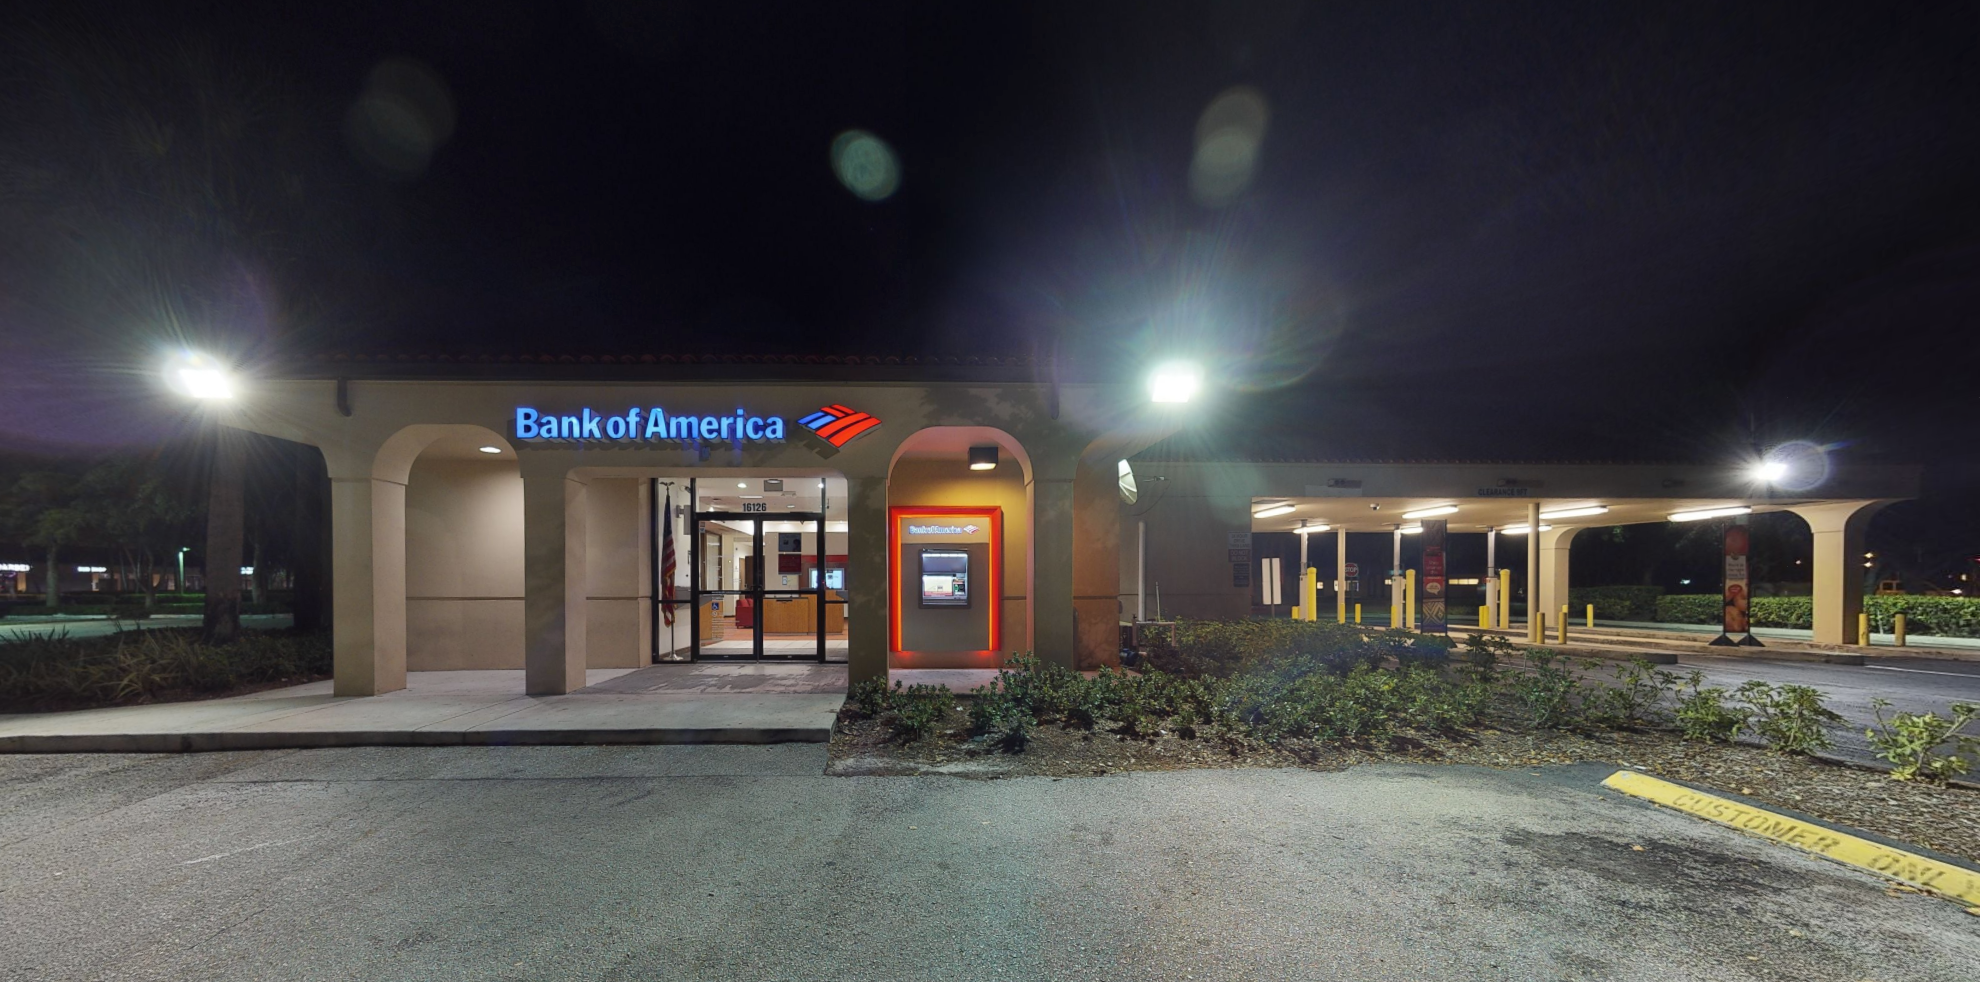 Bank of America financial center with walk-up ATM   16126 S Military Trl, Delray Beach, FL 33484